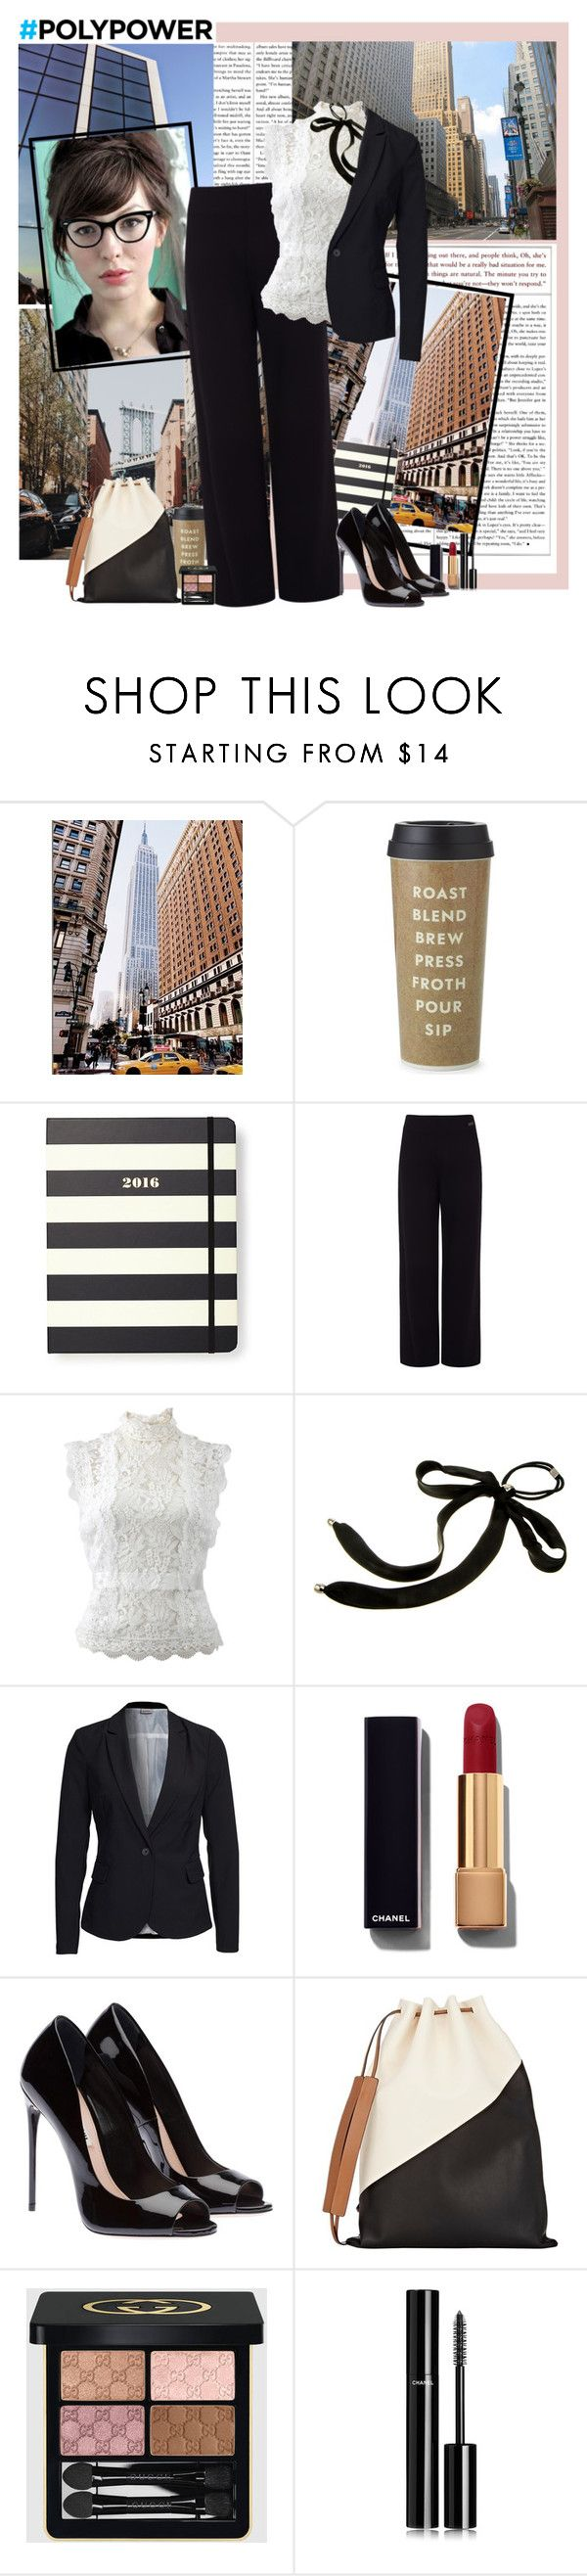 """Power up"" by polybaby ❤ liked on Polyvore featuring Kate Spade, Pink Tartan, Oscar de la Renta, Colette Malouf, Vero Moda, Chanel, Marni, Gucci and PolyPower"